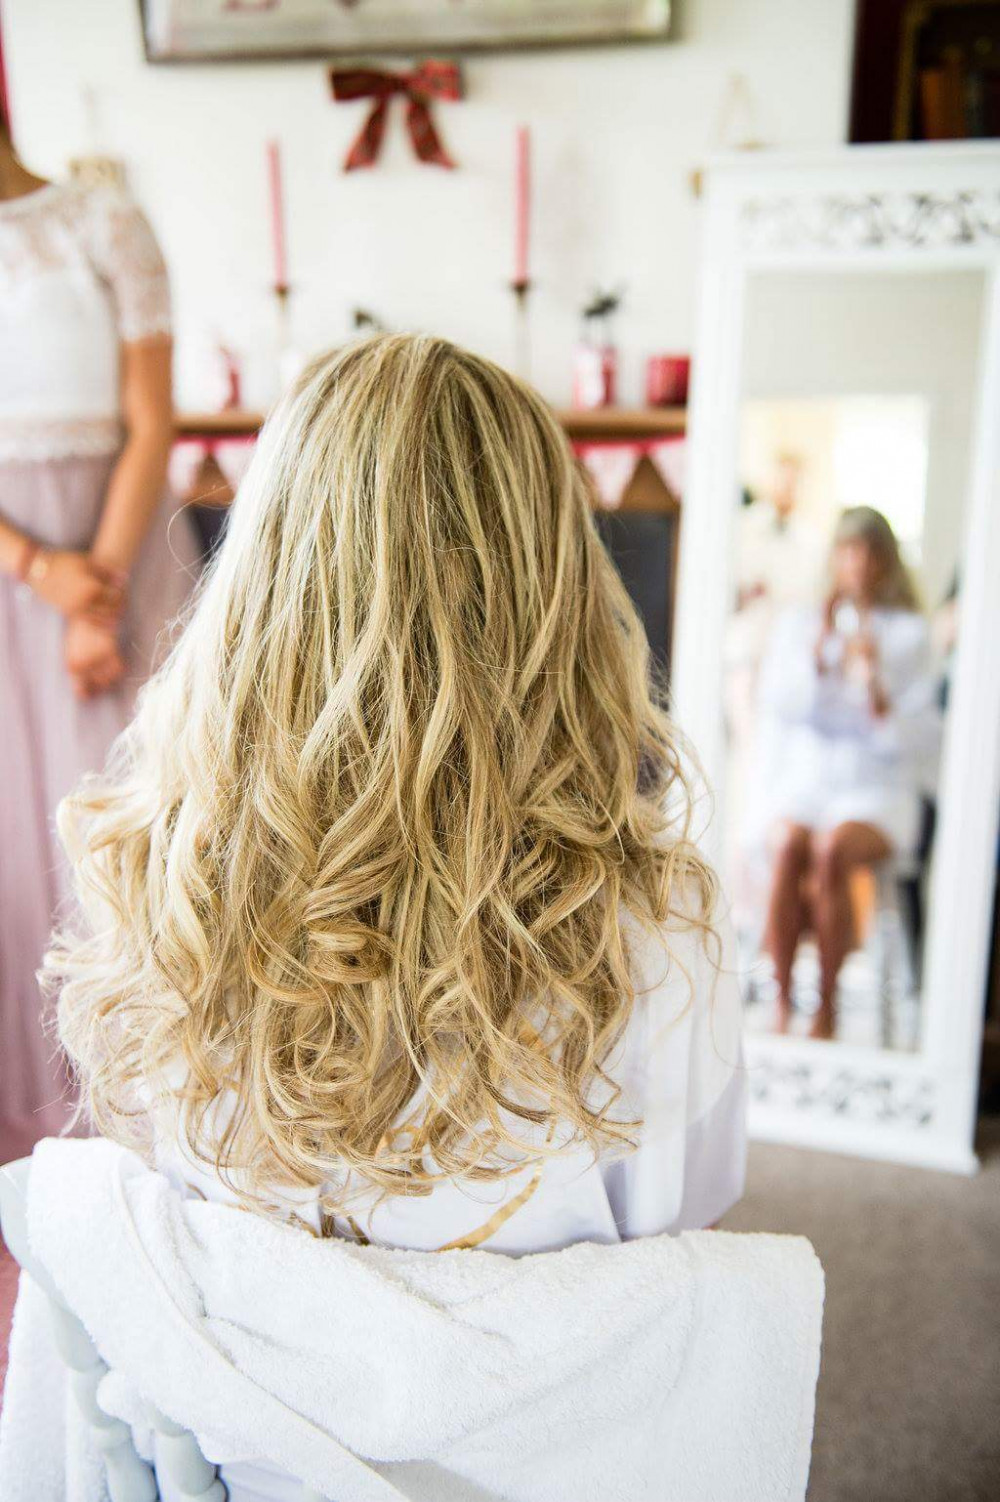 Looking for soft tousled waves for your wedding day, this fits the Bill! Perfect for Boho and Natural Brides - Make Me Bridal Artist: Bridal hair by Jennie . Photography by: Philippa Genge . #bohemian